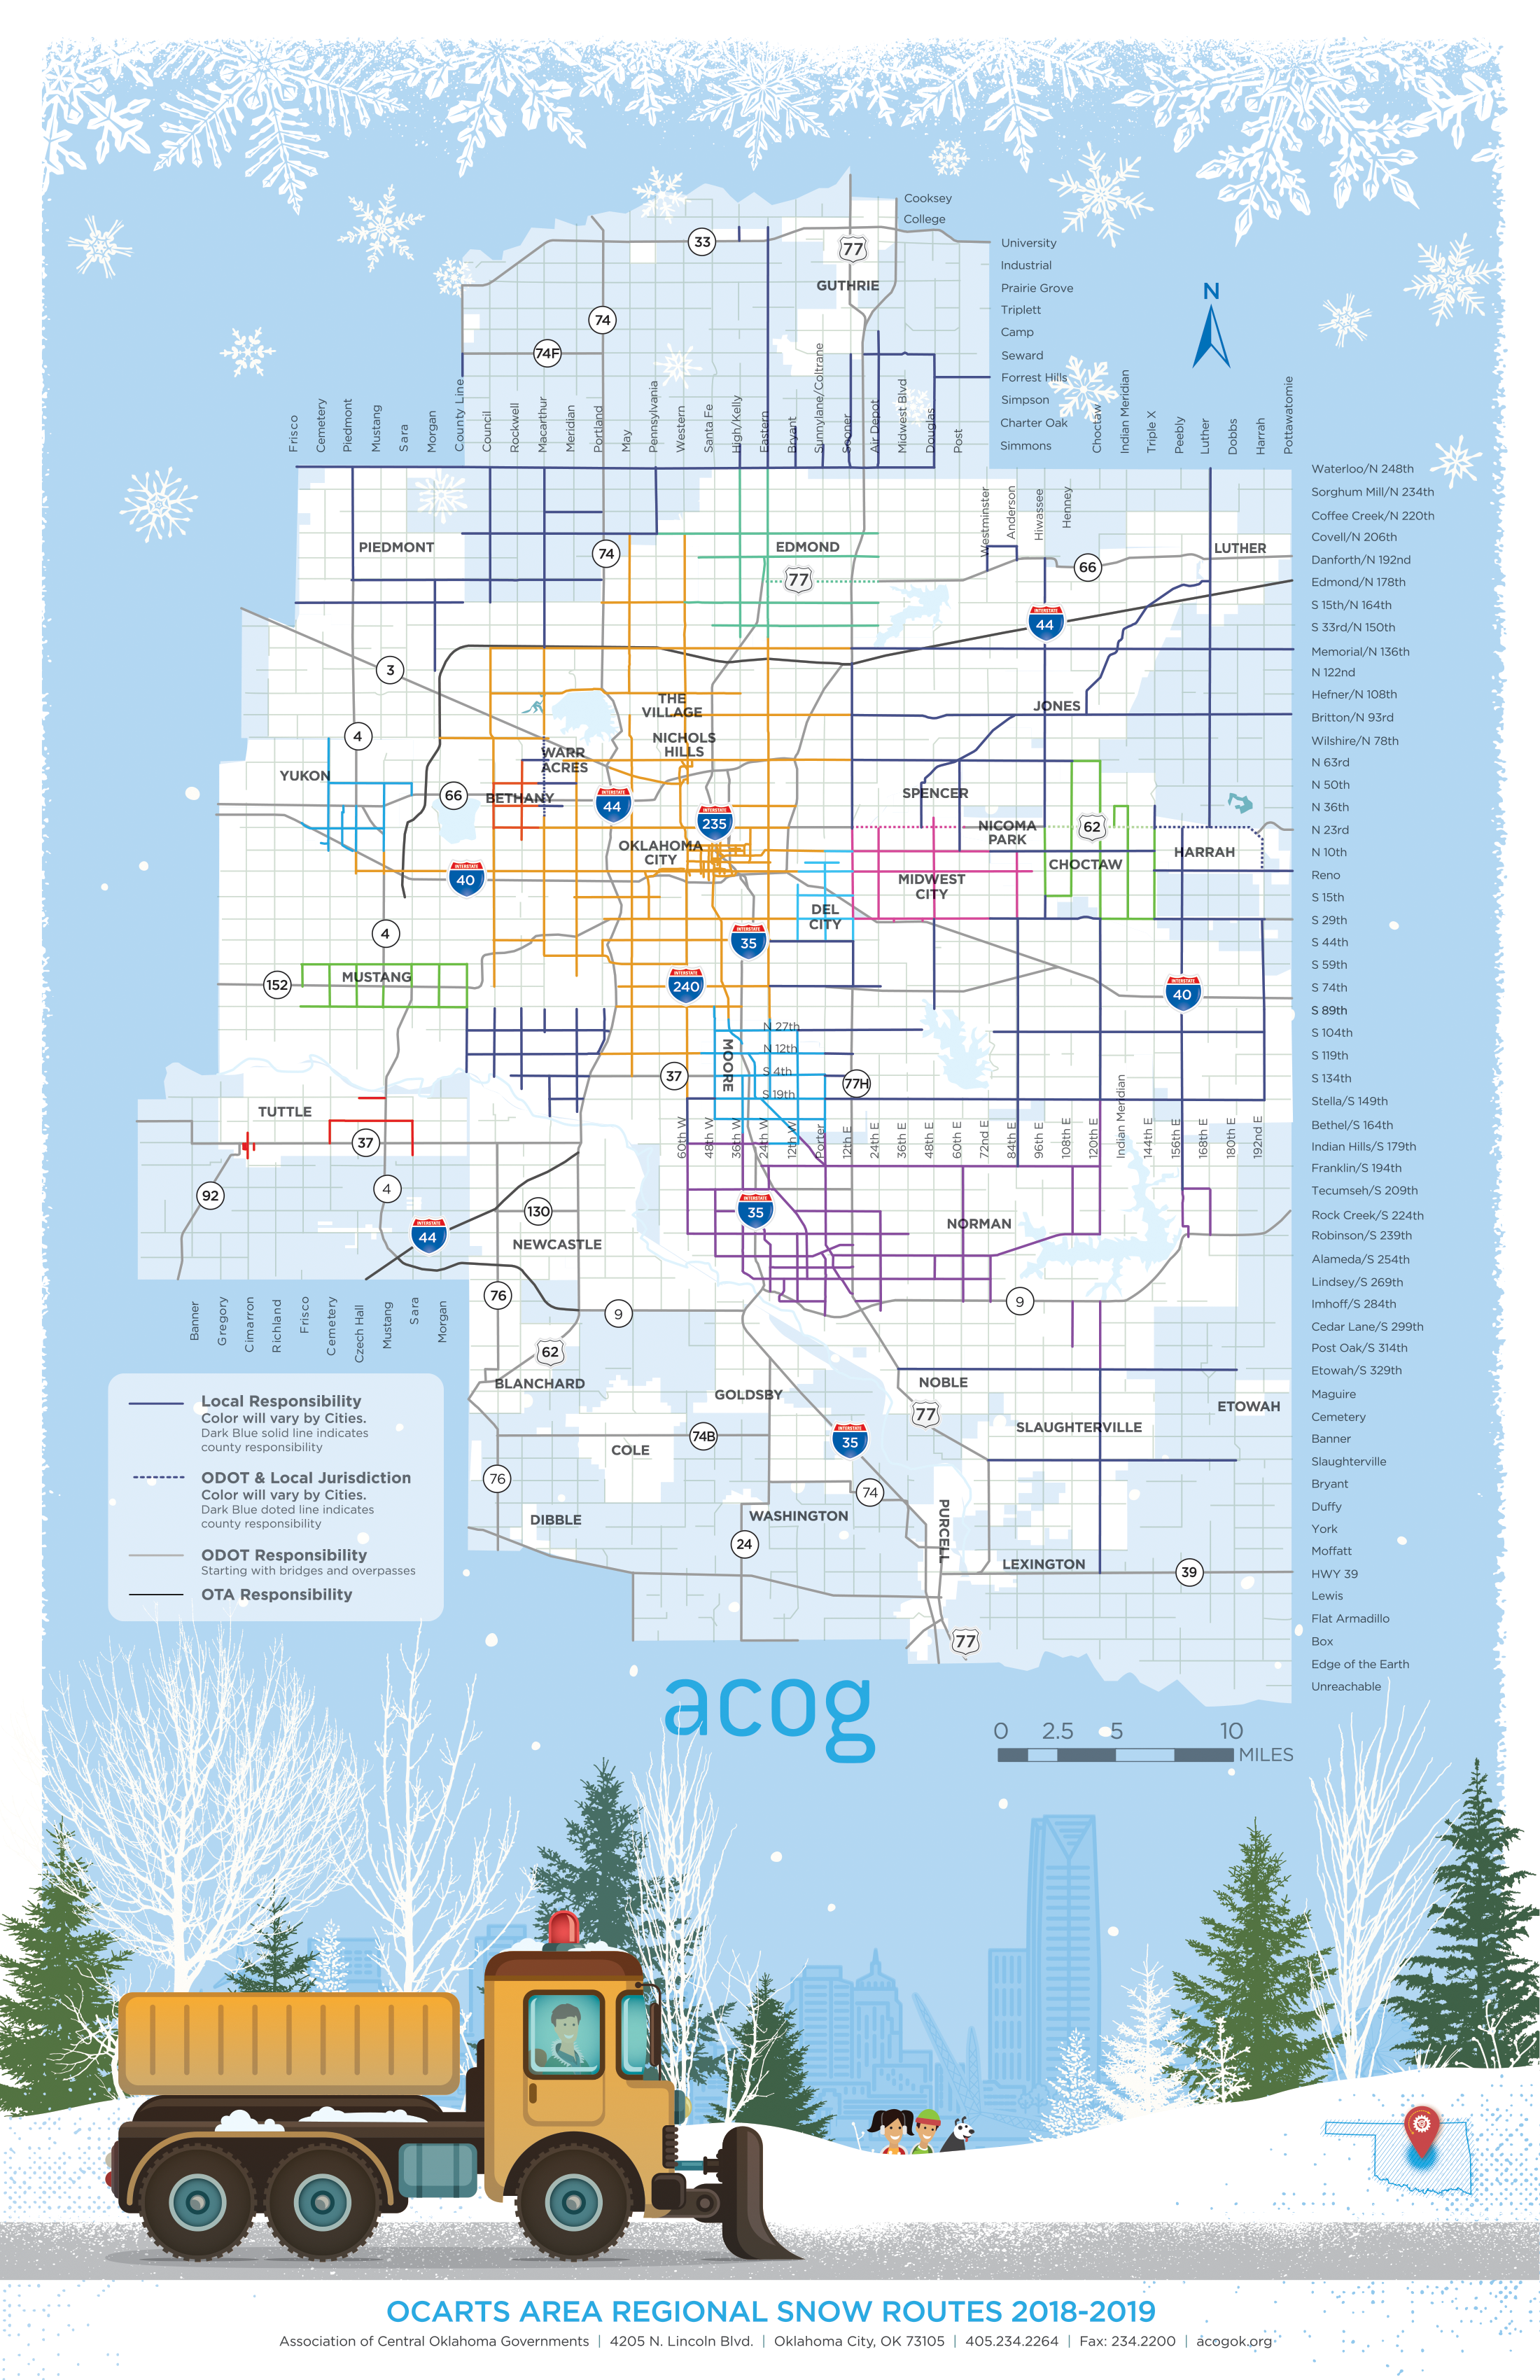 2019 Free Printable Snow Route Map For Okc Region Acog